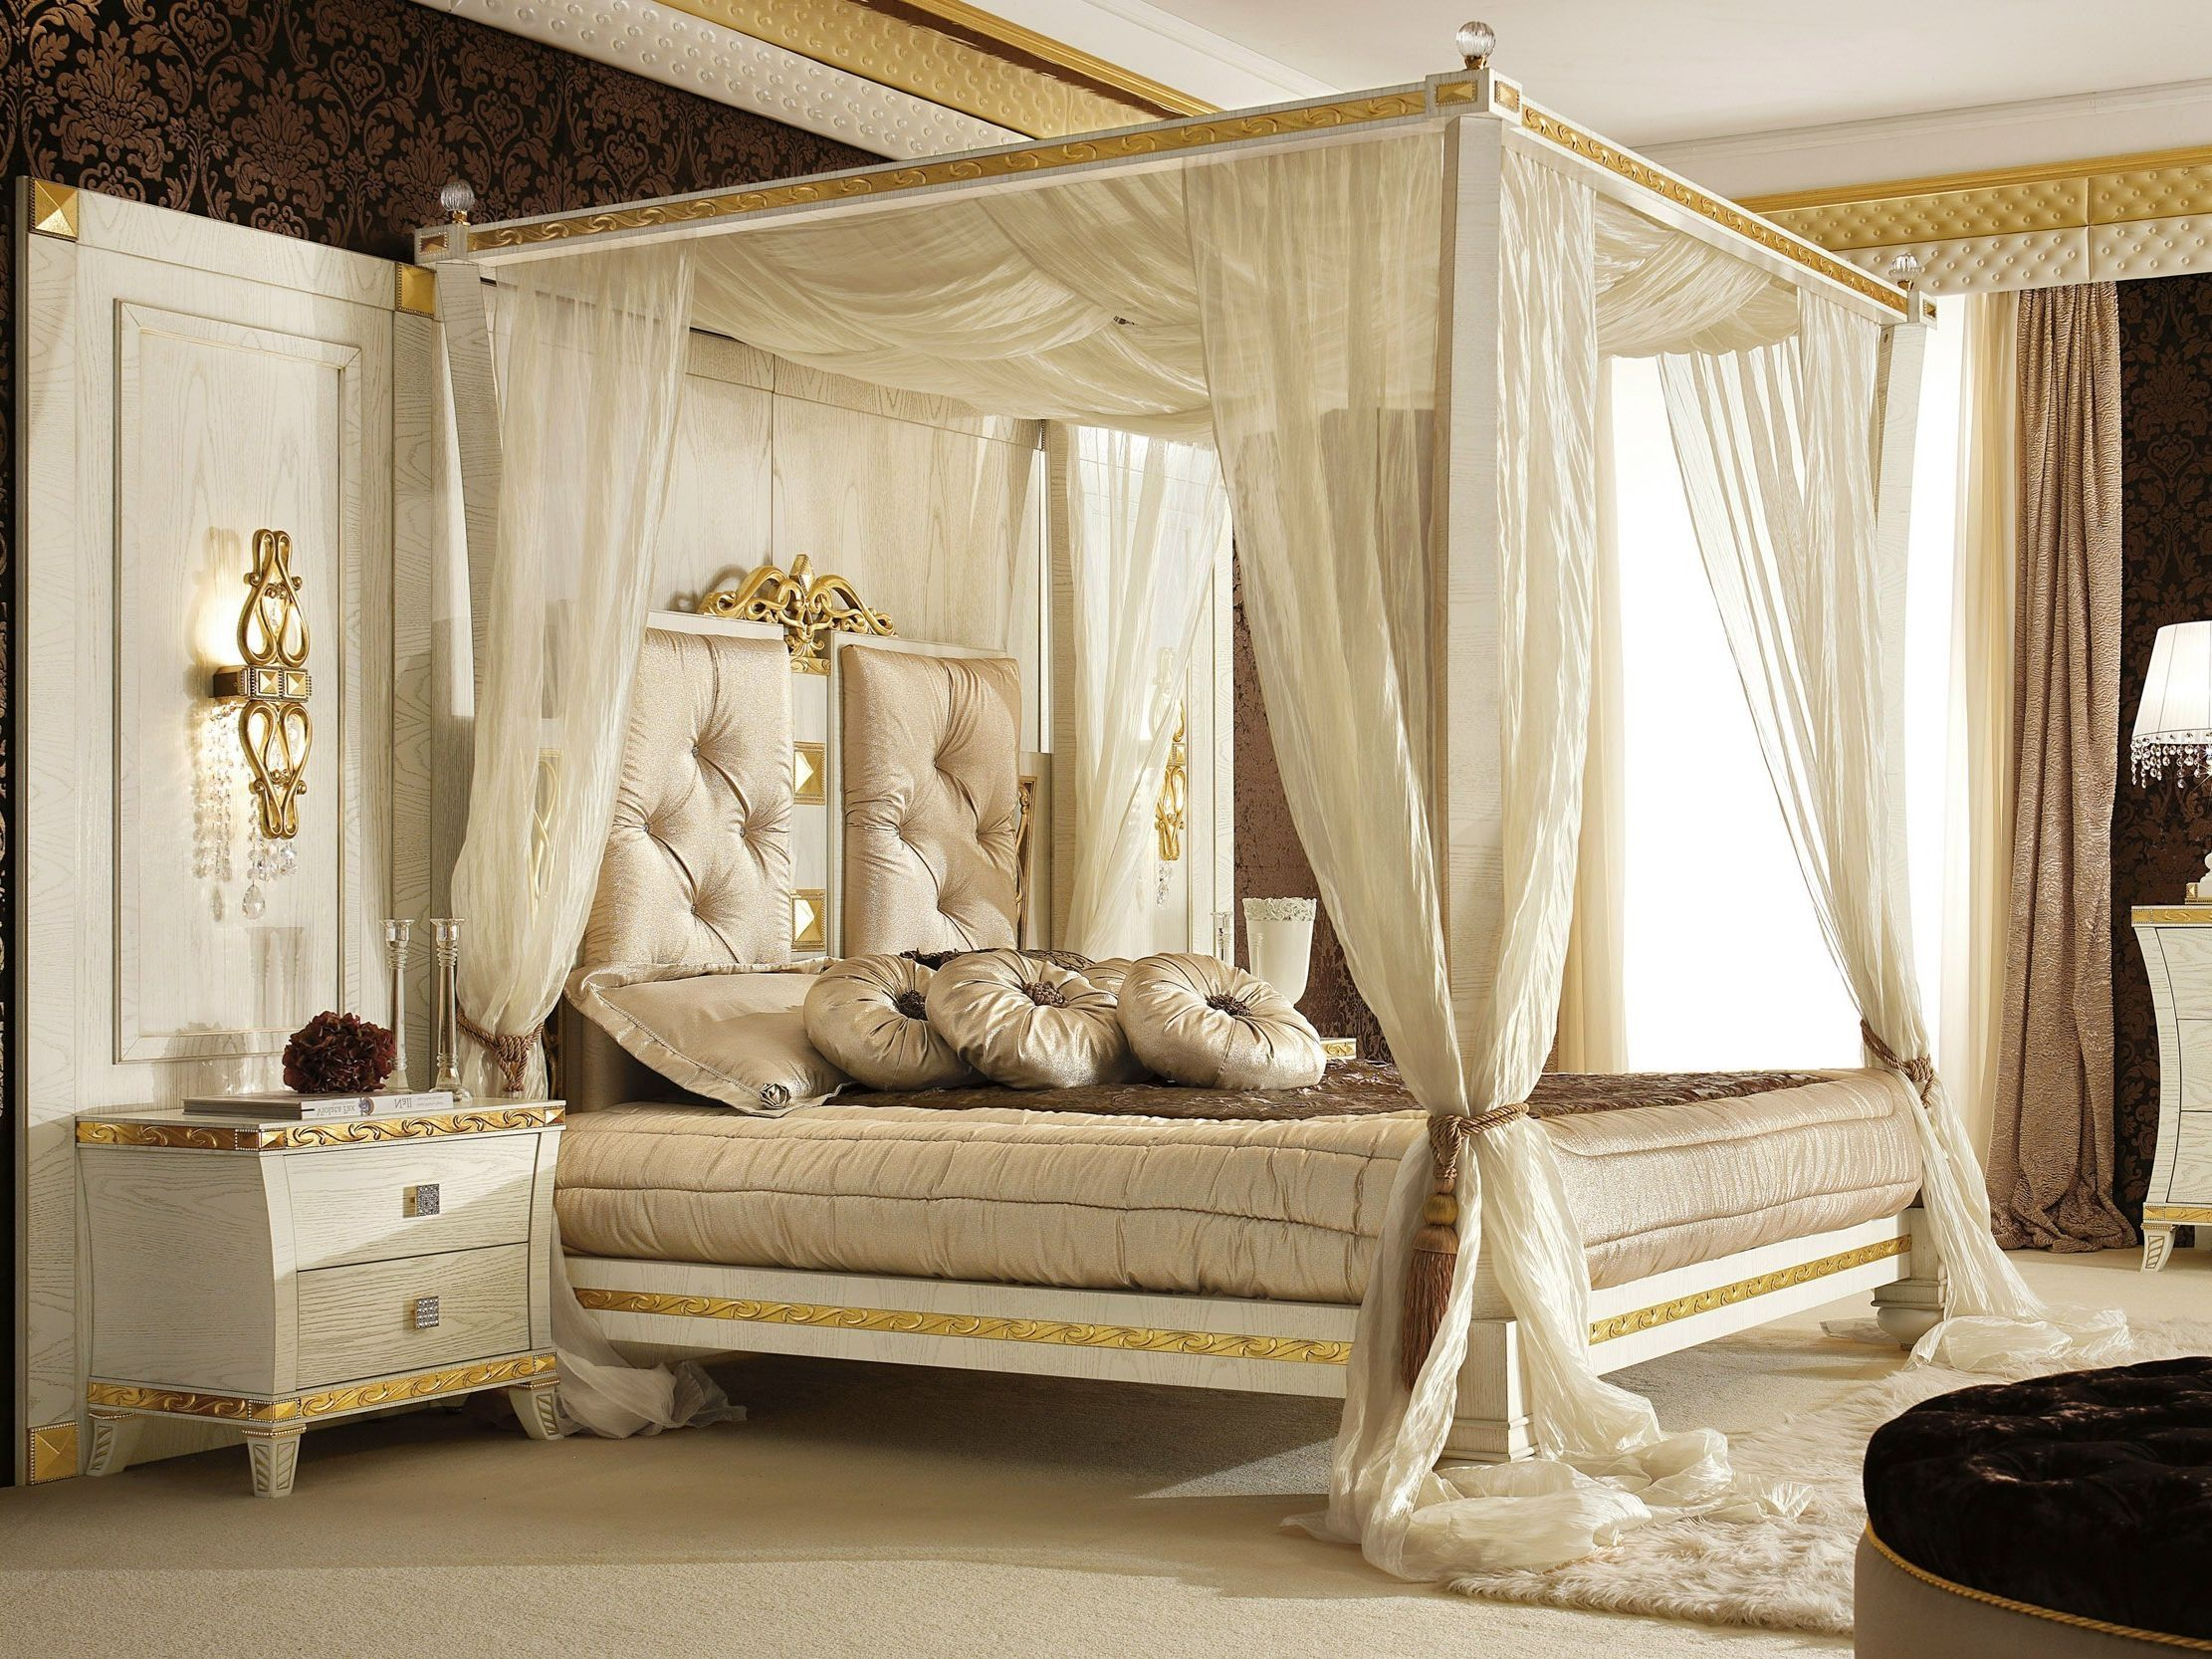 Picture Of Superb Canopy Frame Modern Bed Curtains